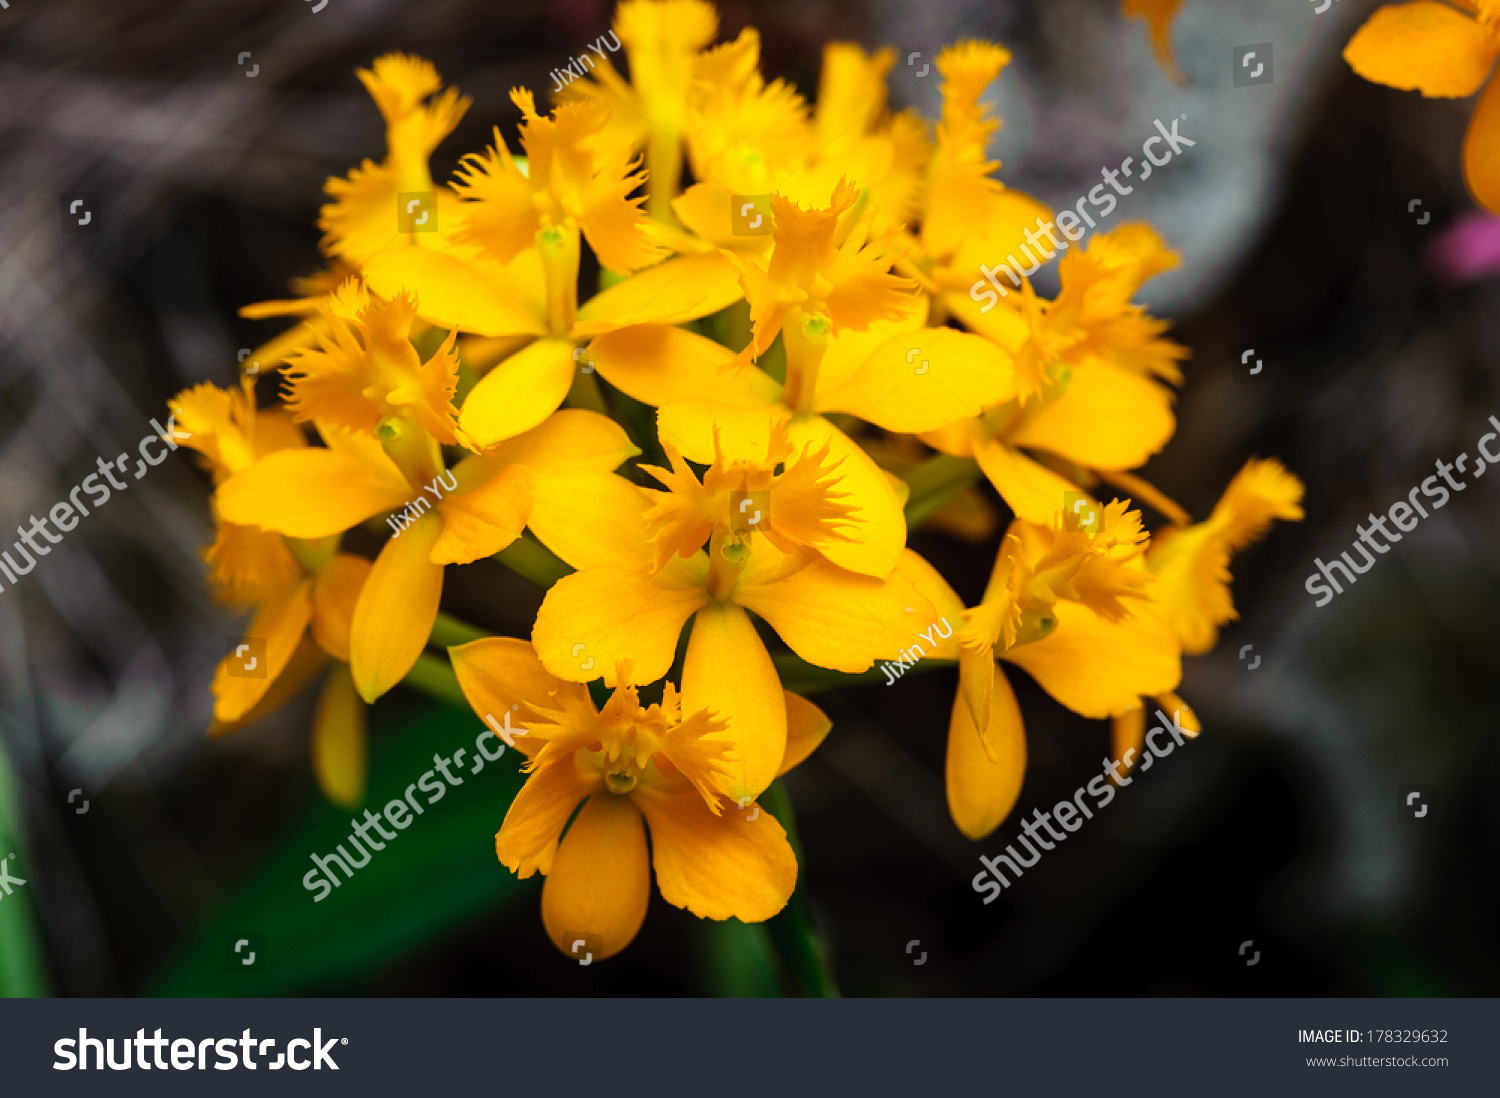 Winter Flowers Yellow Cyclamen Flowers Greenhouse Stock Photo